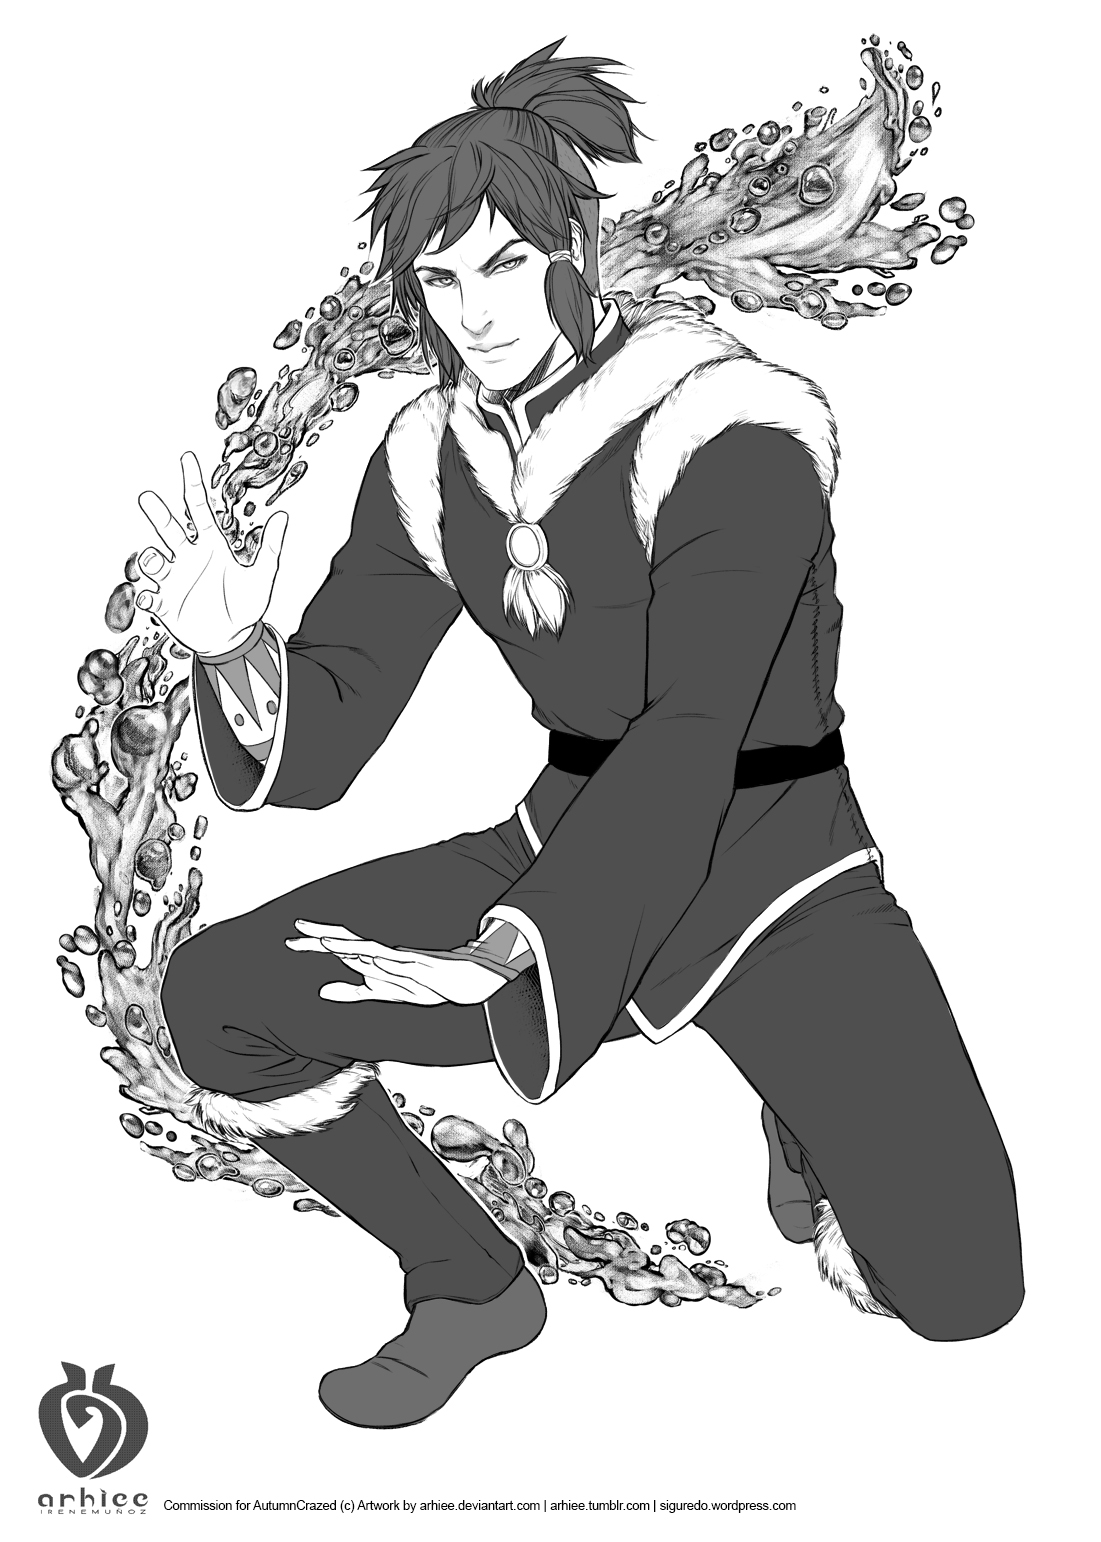 Waterbender male commission for AutumnCrazed by arhiee